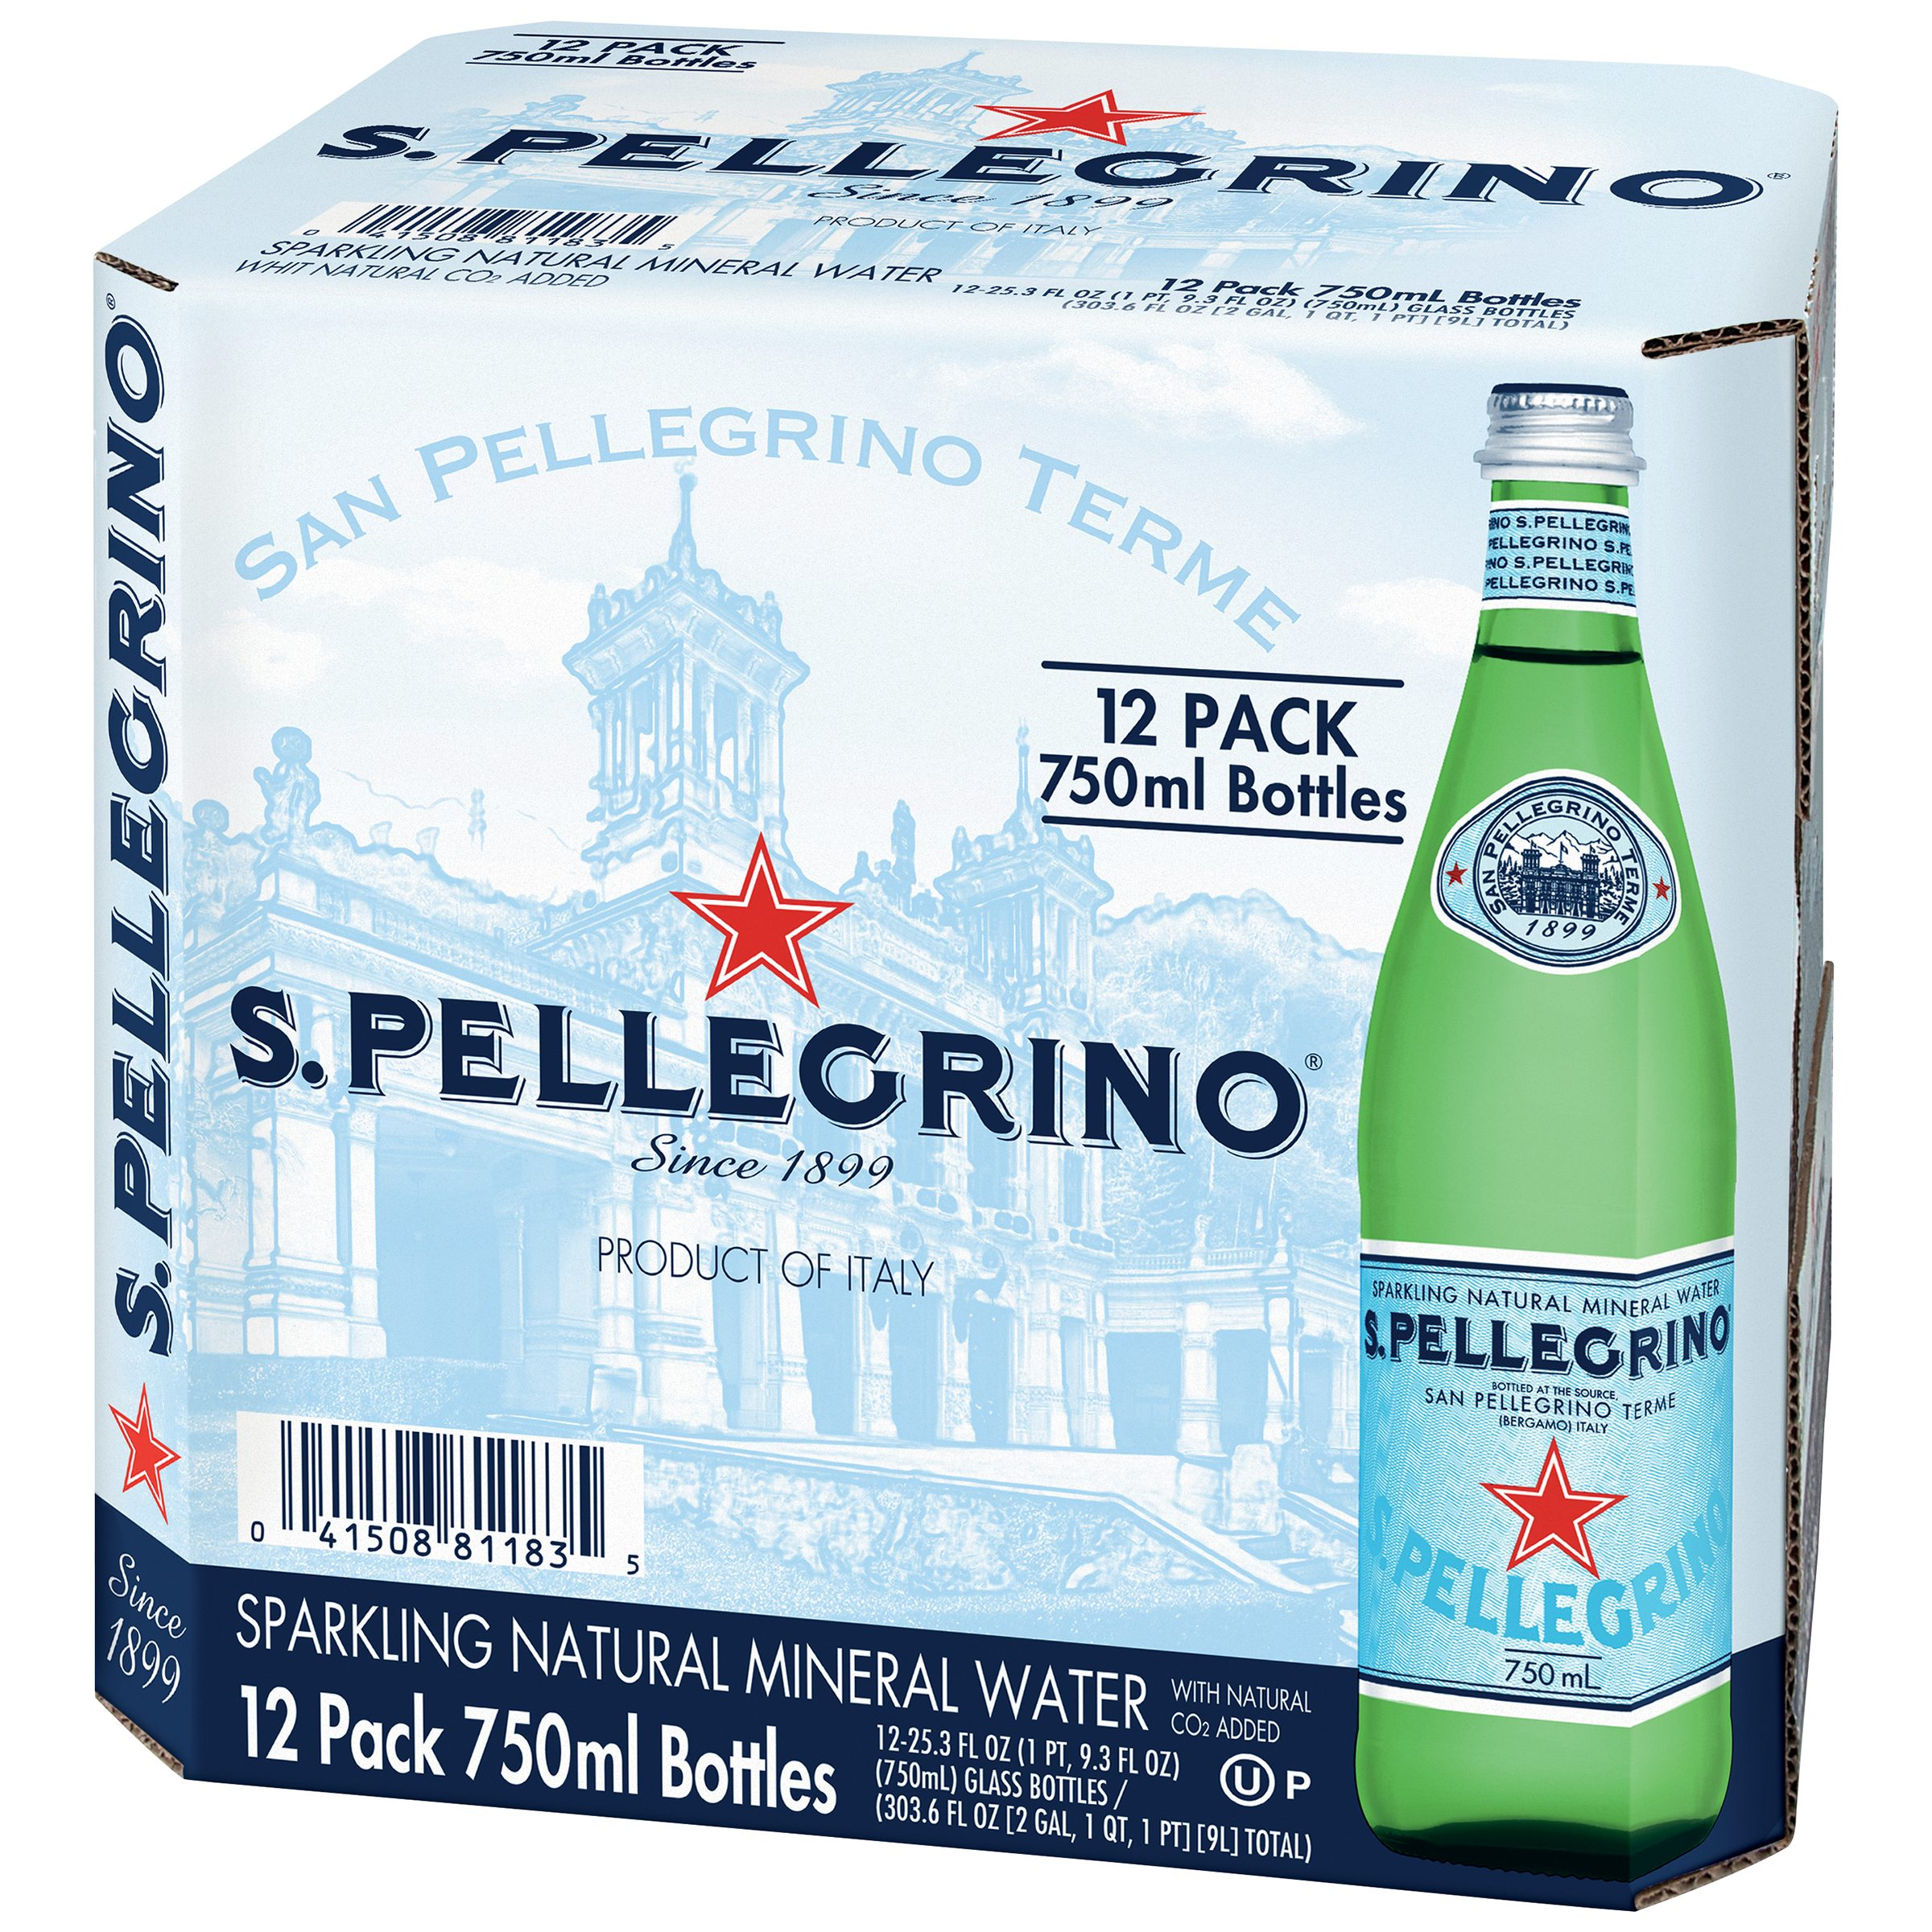 SANPELLEGRINO Sparkling Natural Mineral Water, 25.3-ounce glass bottles (Pack of 12)